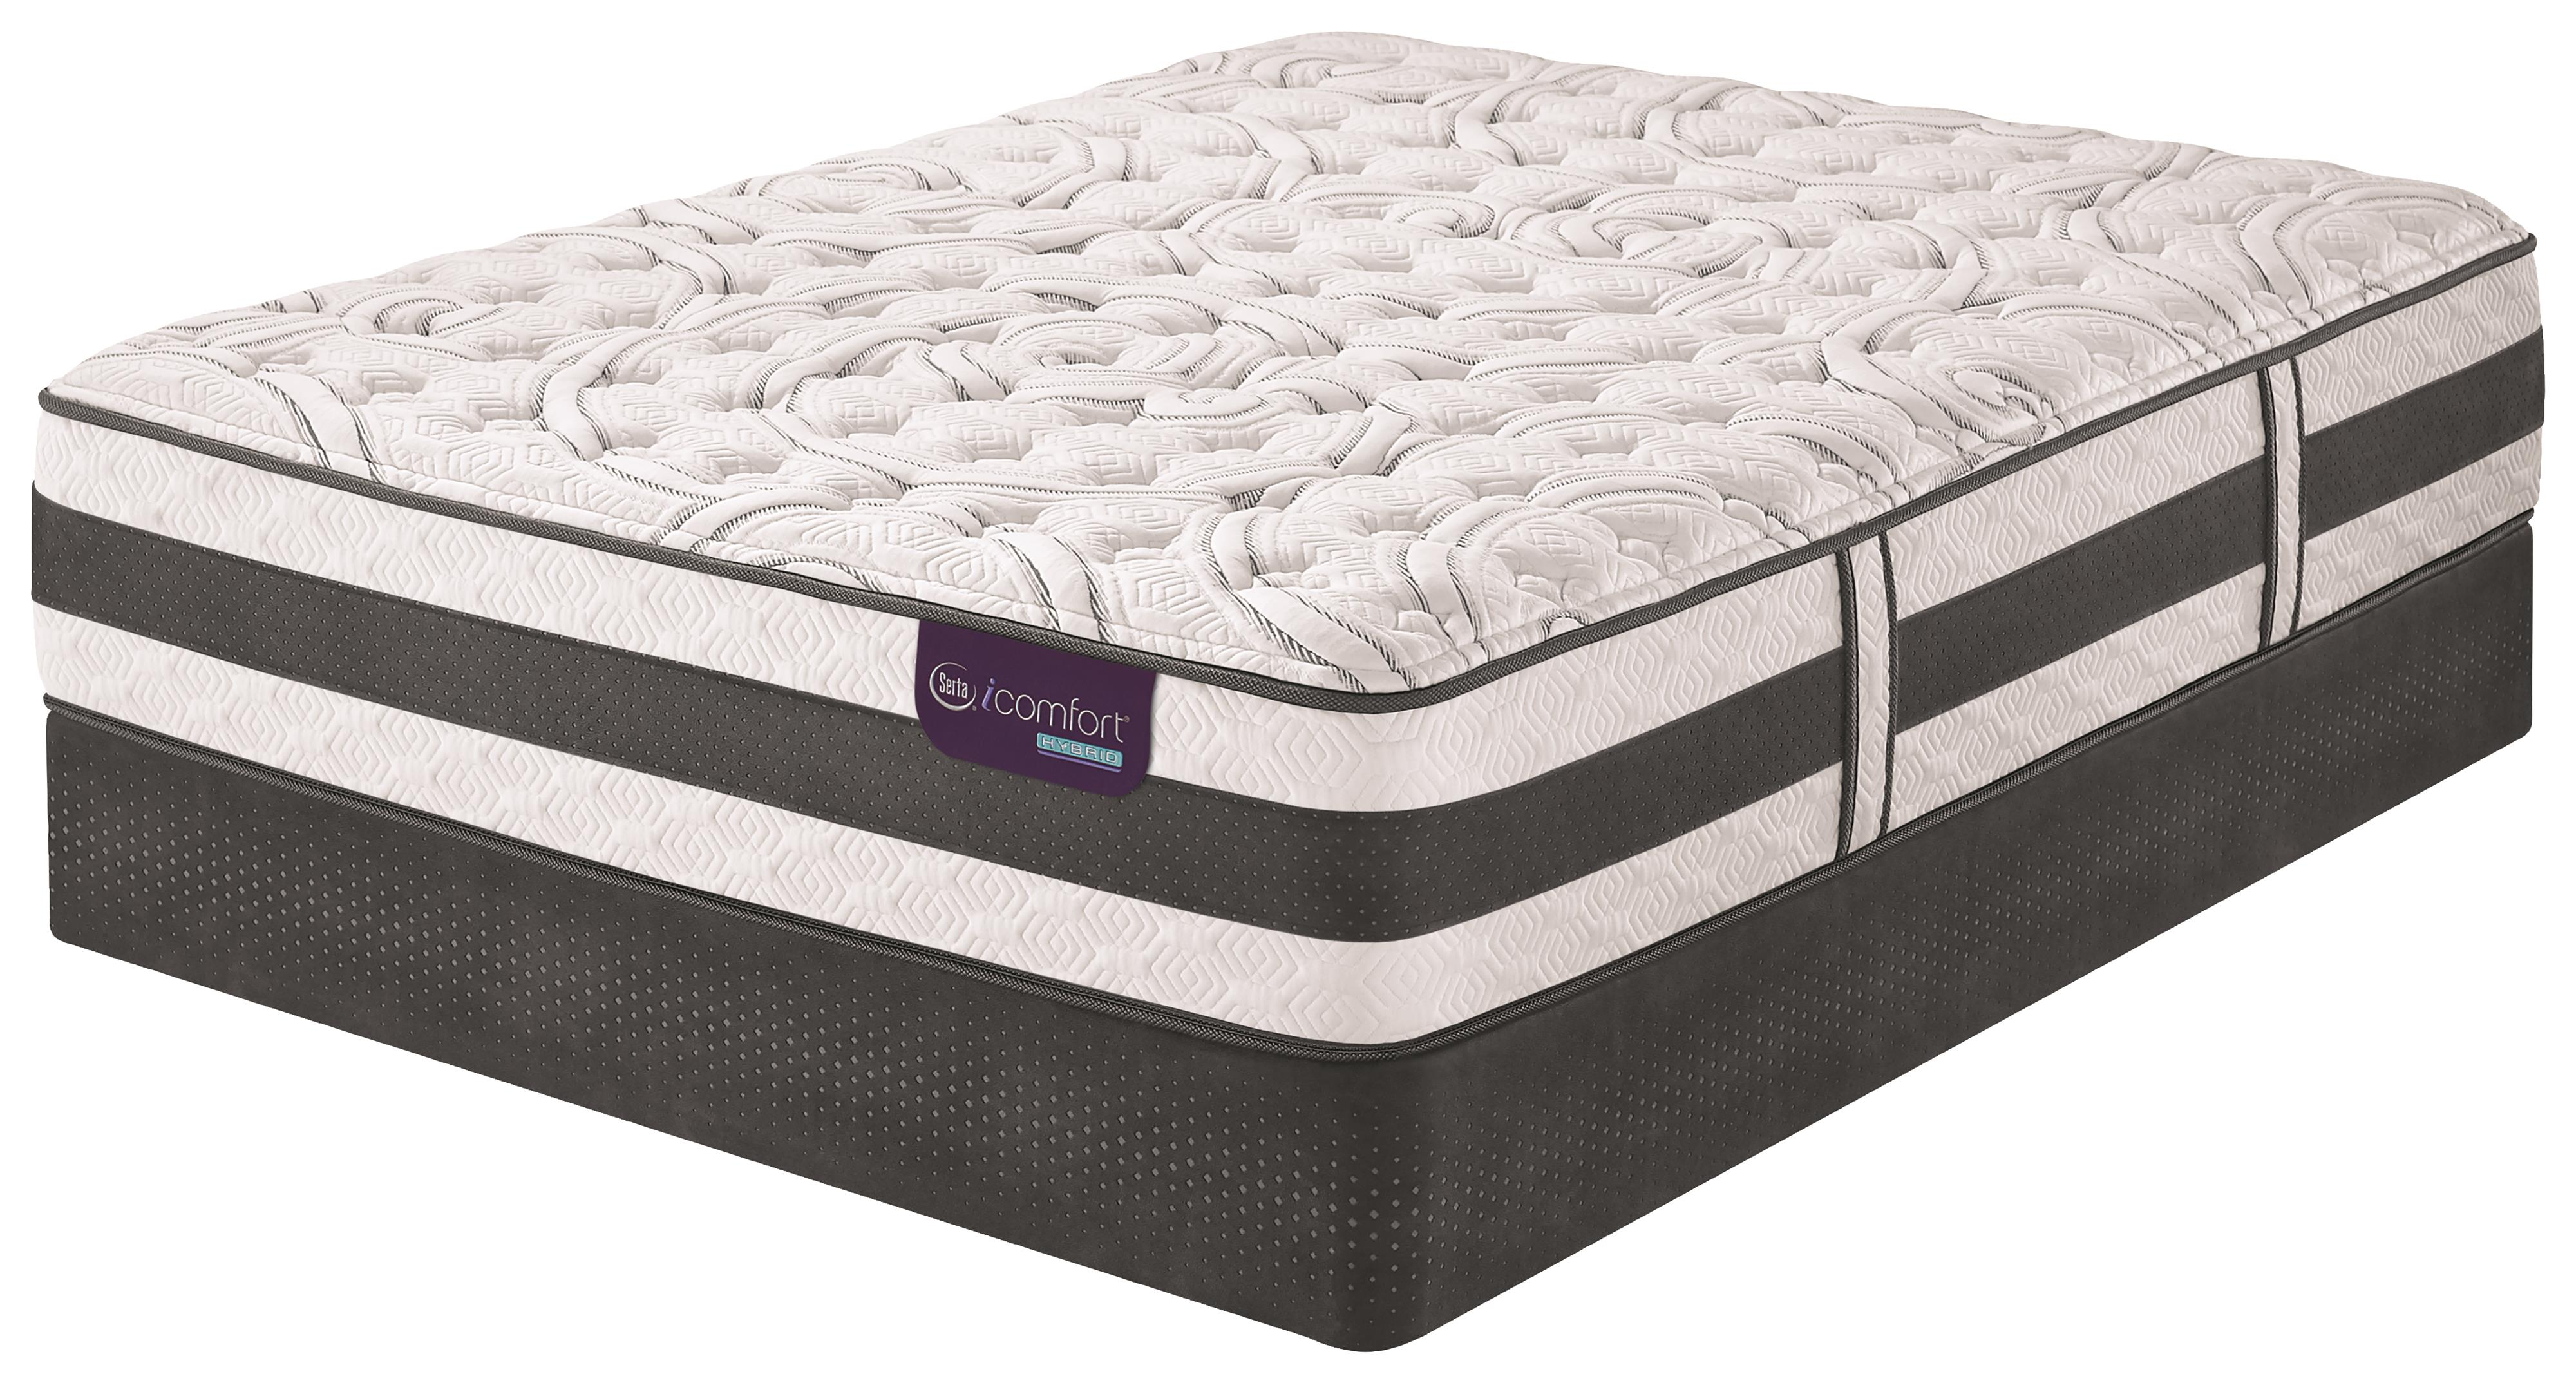 Serta iComfort Hybrid Applause II King Firm Hybrid Quilted Mattress Set - Item Number: ApplauseIIF-K+2xStabL-Base-TXLK